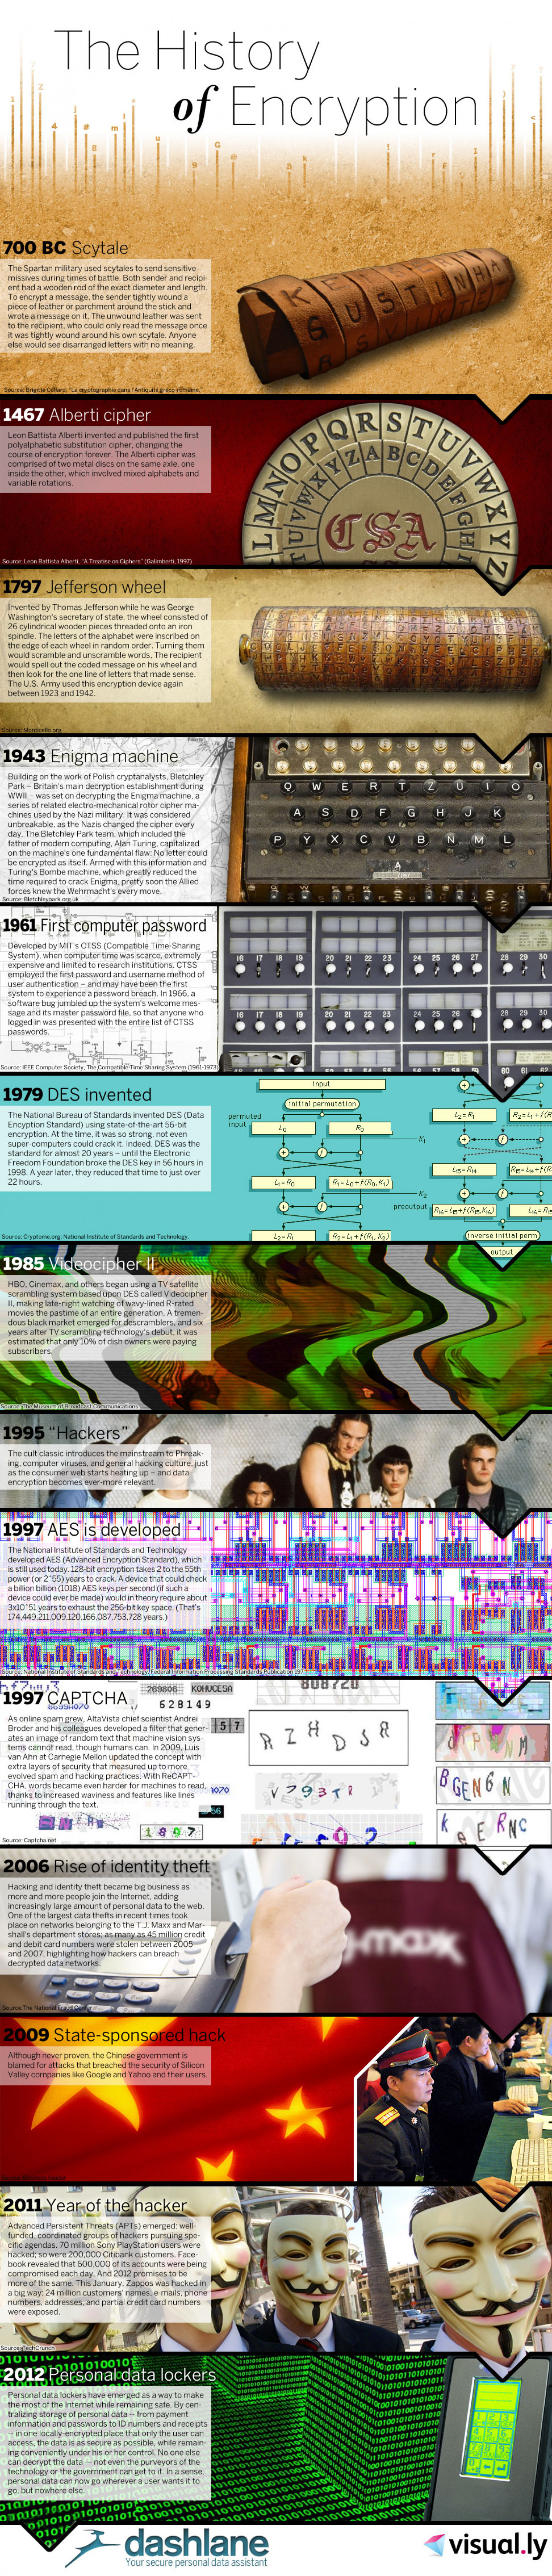 The History of Encryption Infographic